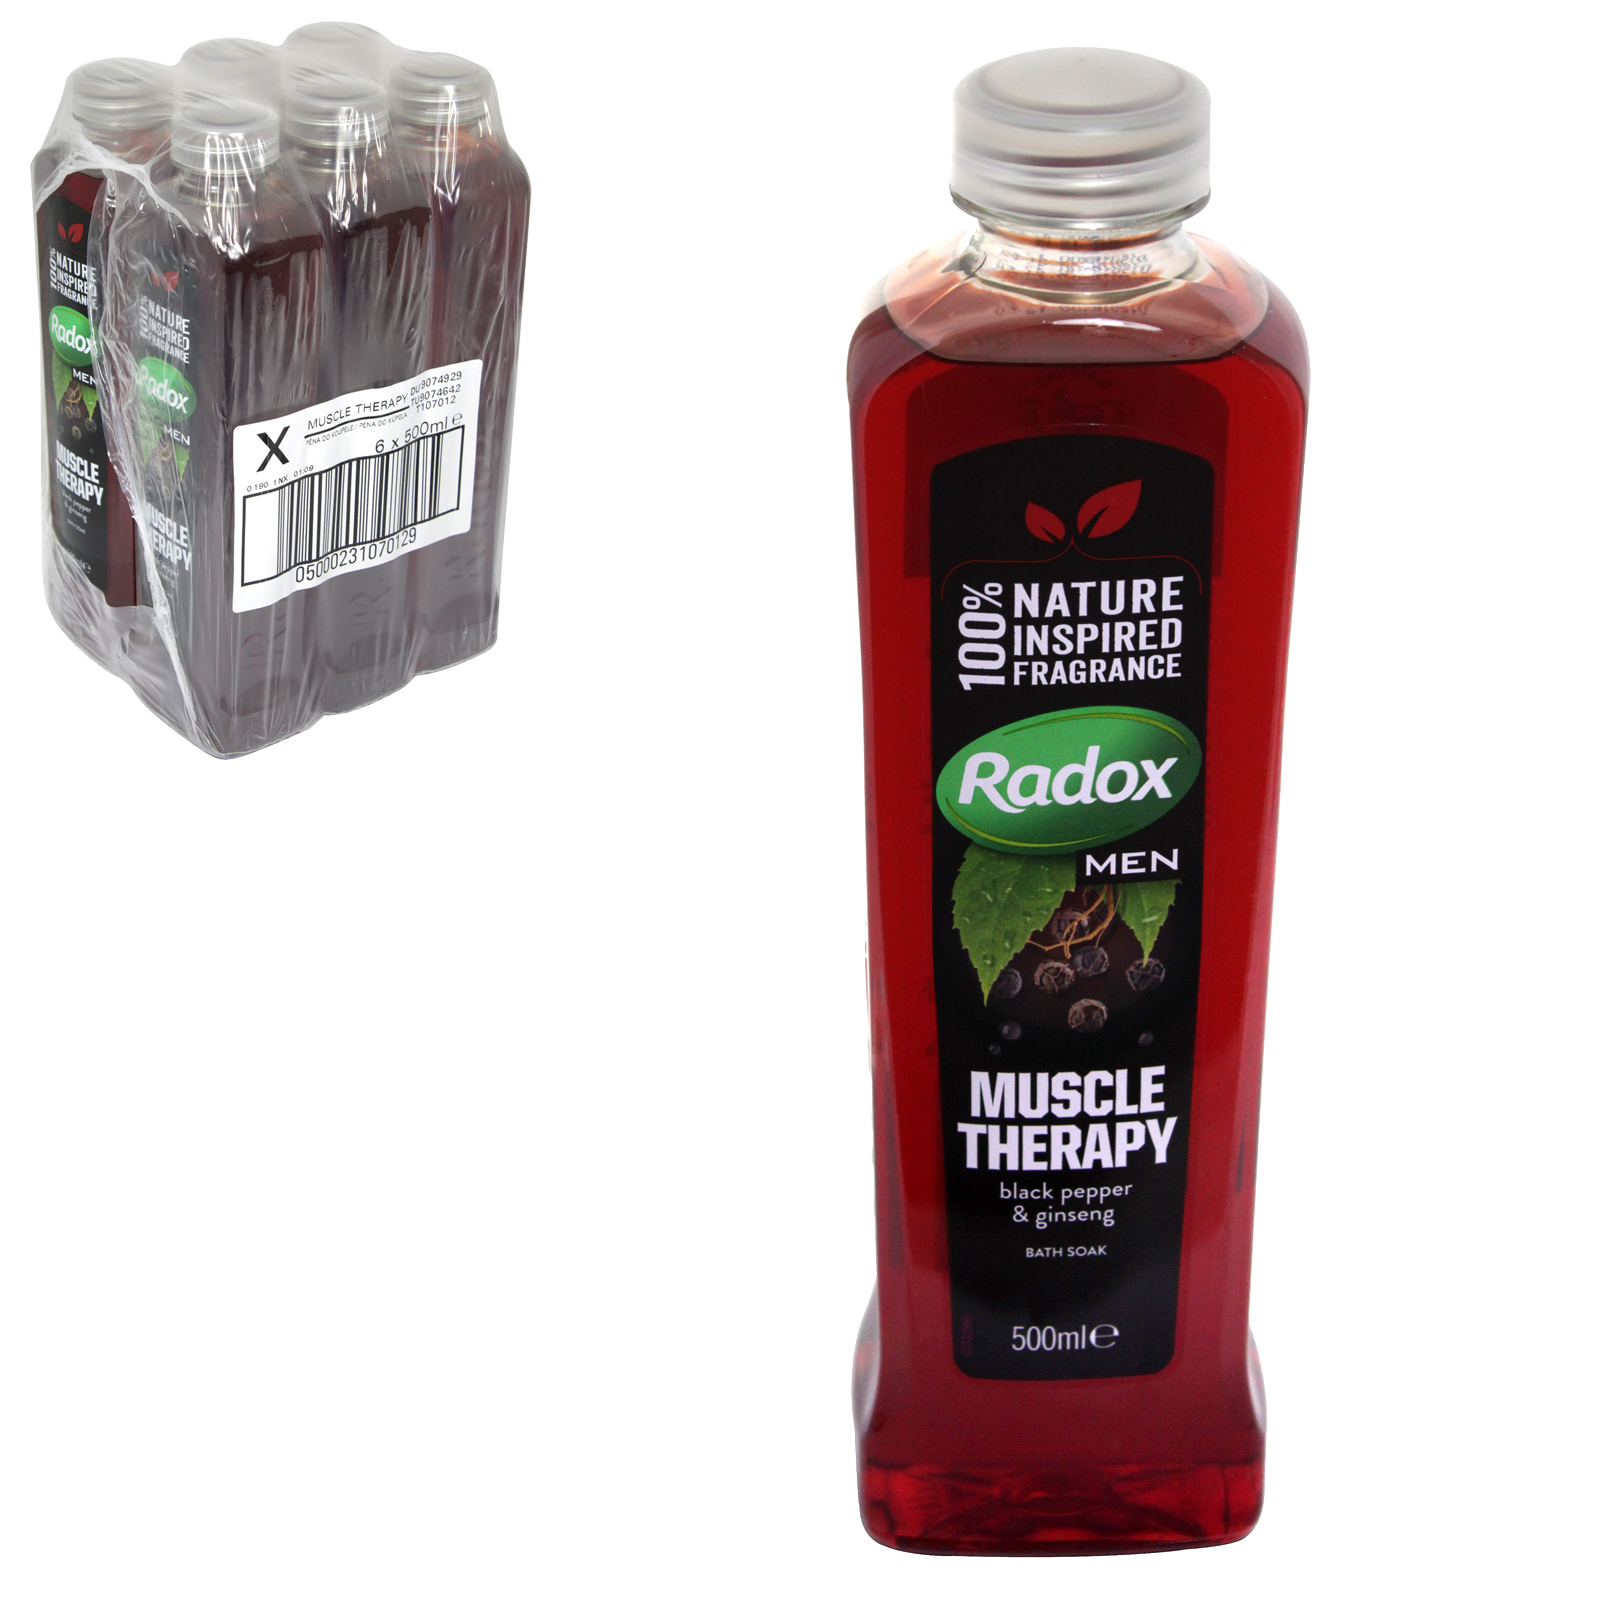 RADOX HERBAL BATH 500ML MUSCLE THERAPY PM ?1.49 X6